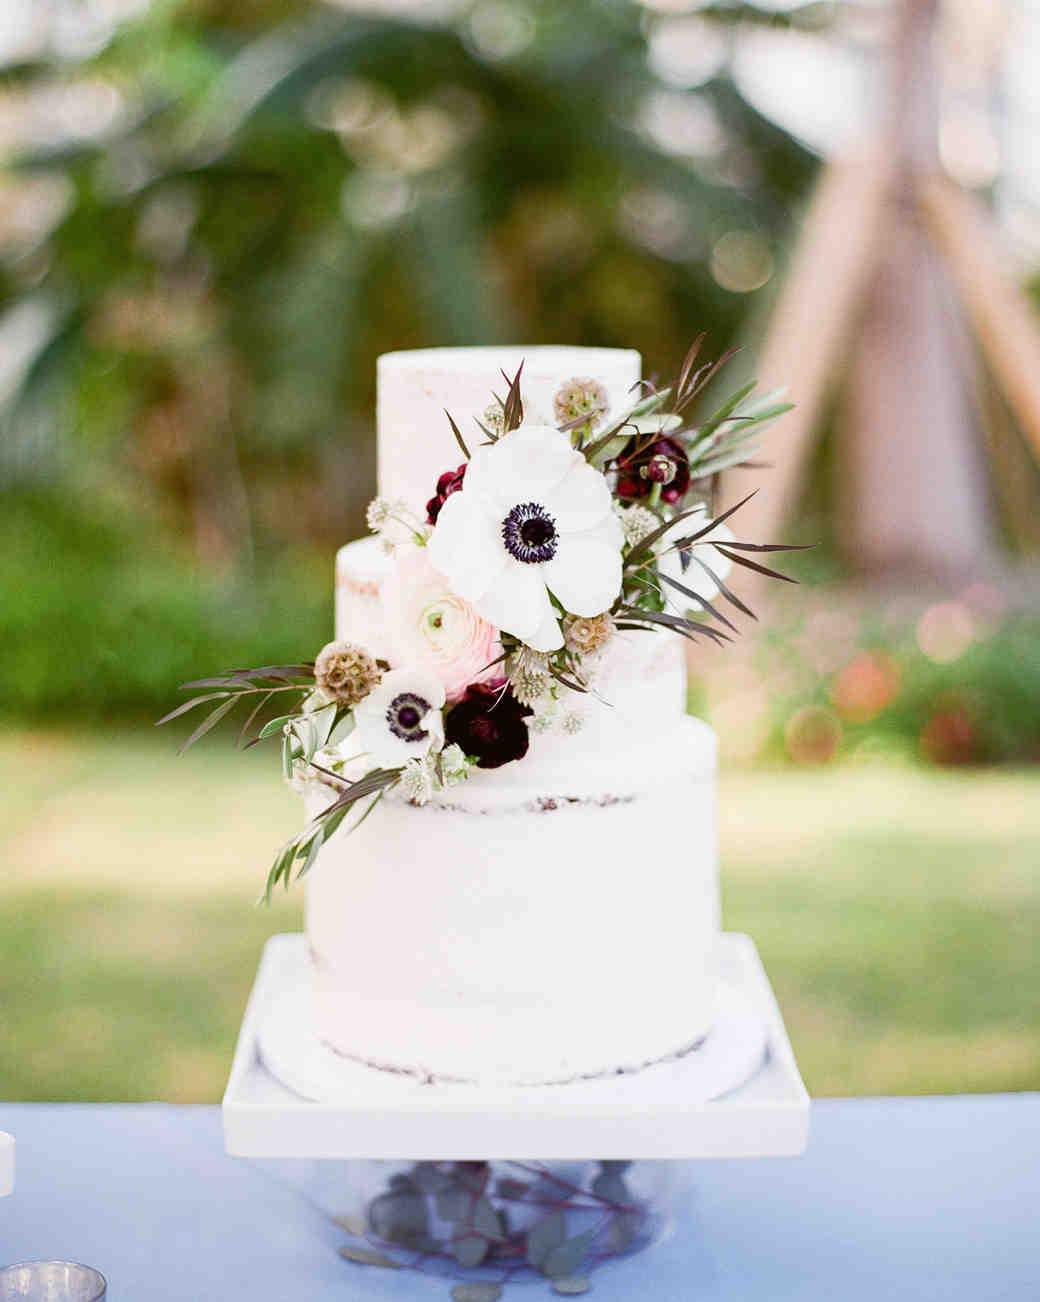 white frosted wedding cake topped with floral arrangement